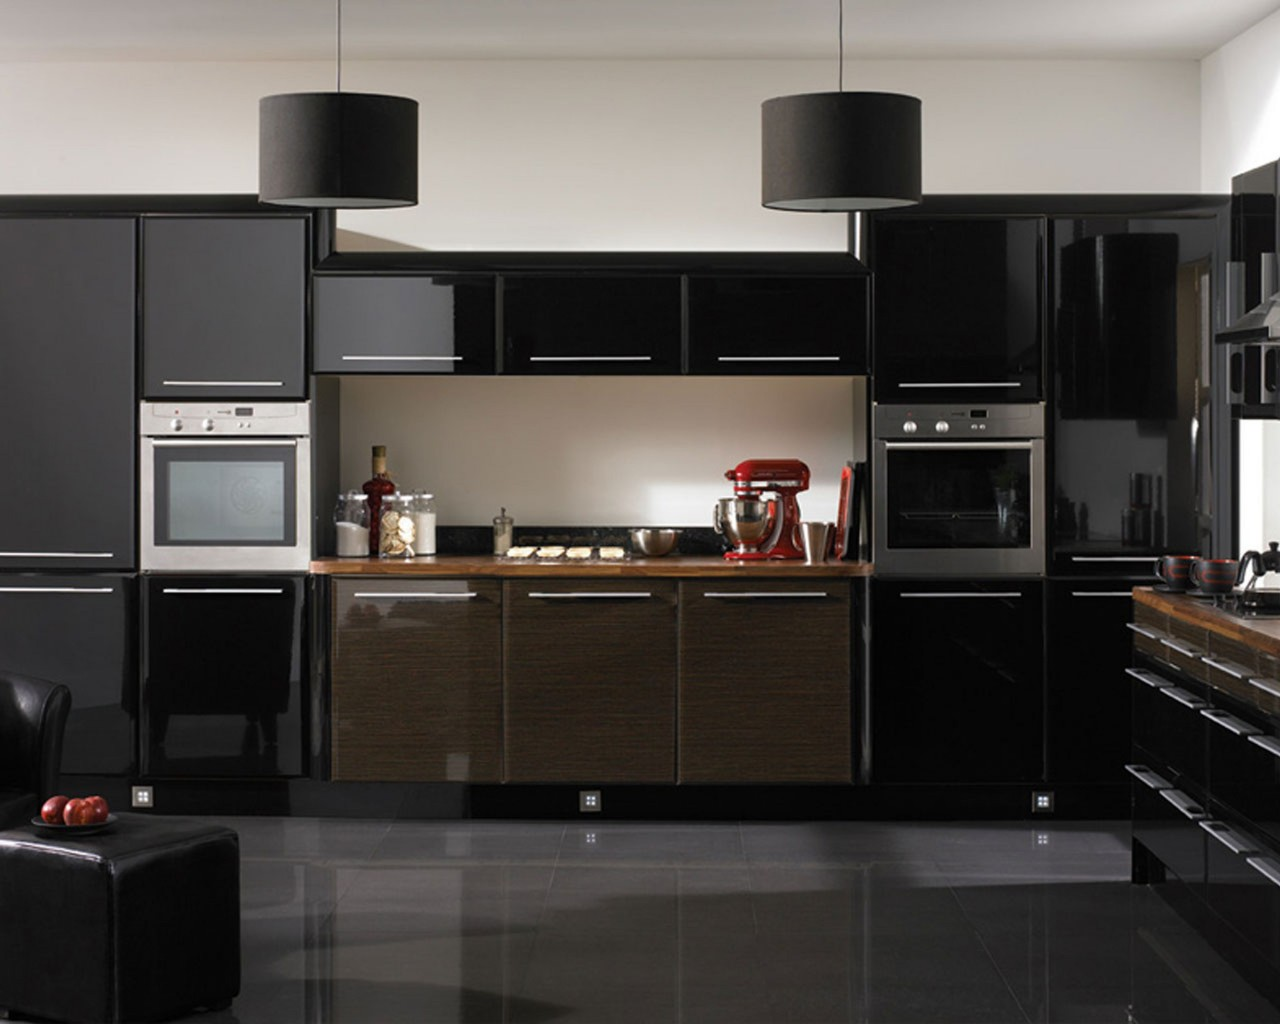 Black sweet Kitchen Cabinets Design Seductive furniture design Awesome kitchen cabinet door ideas Futuristic Style 1280x1024